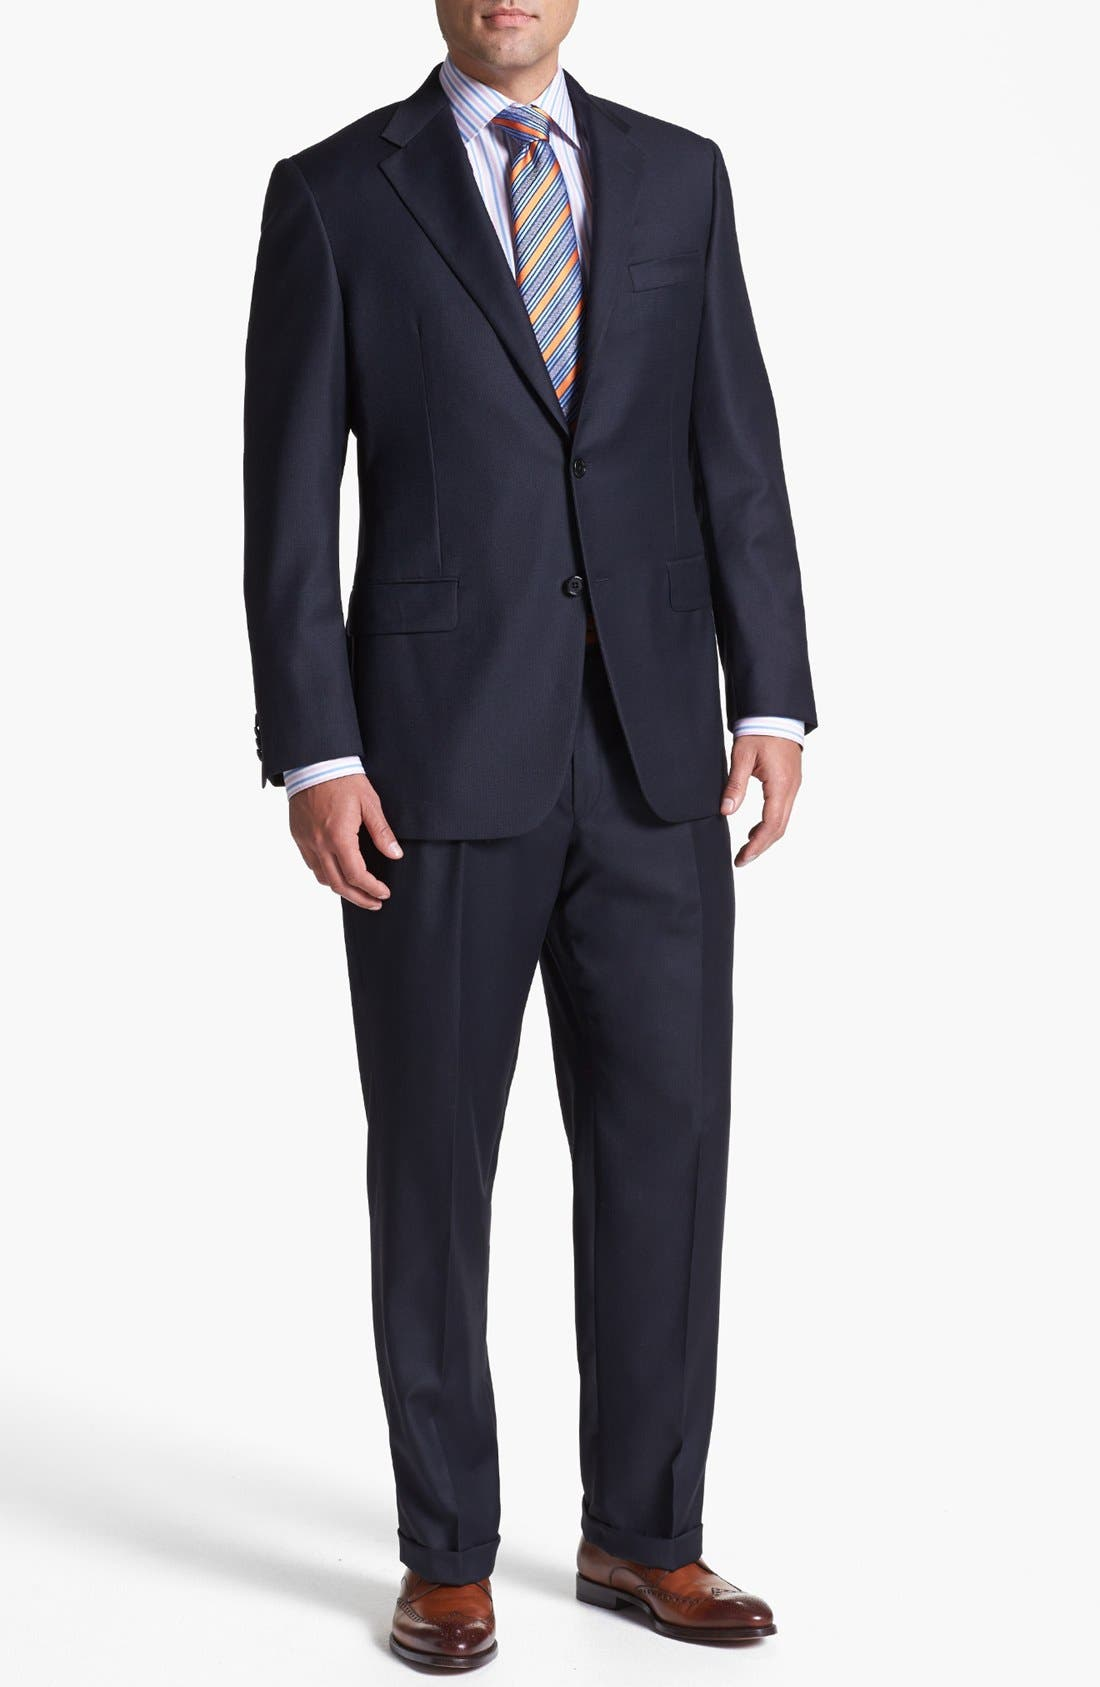 Main Image - Hickey Freeman Navy Worsted Wool Suit